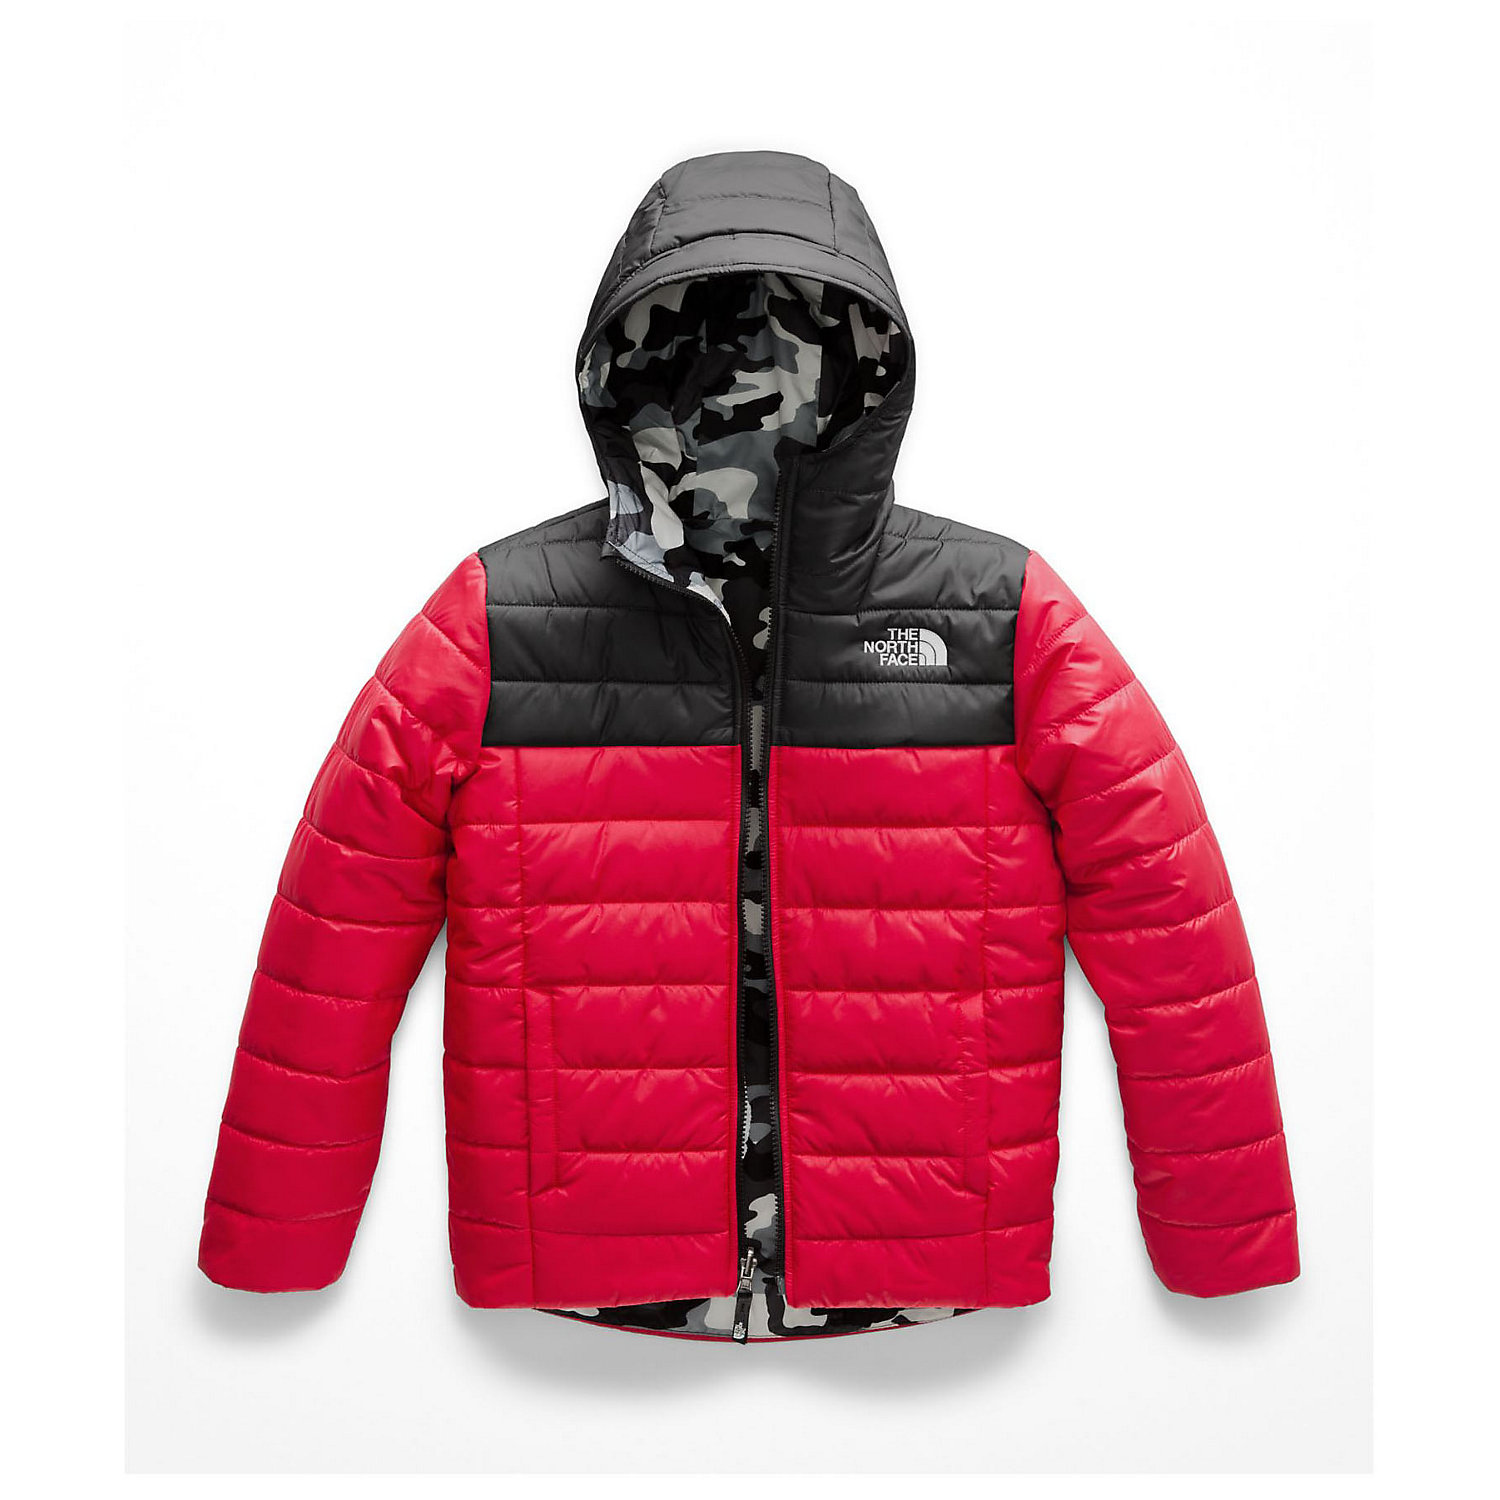 82d4c5bd96e5 The North Face Kid's Reversible Perrito Jacket